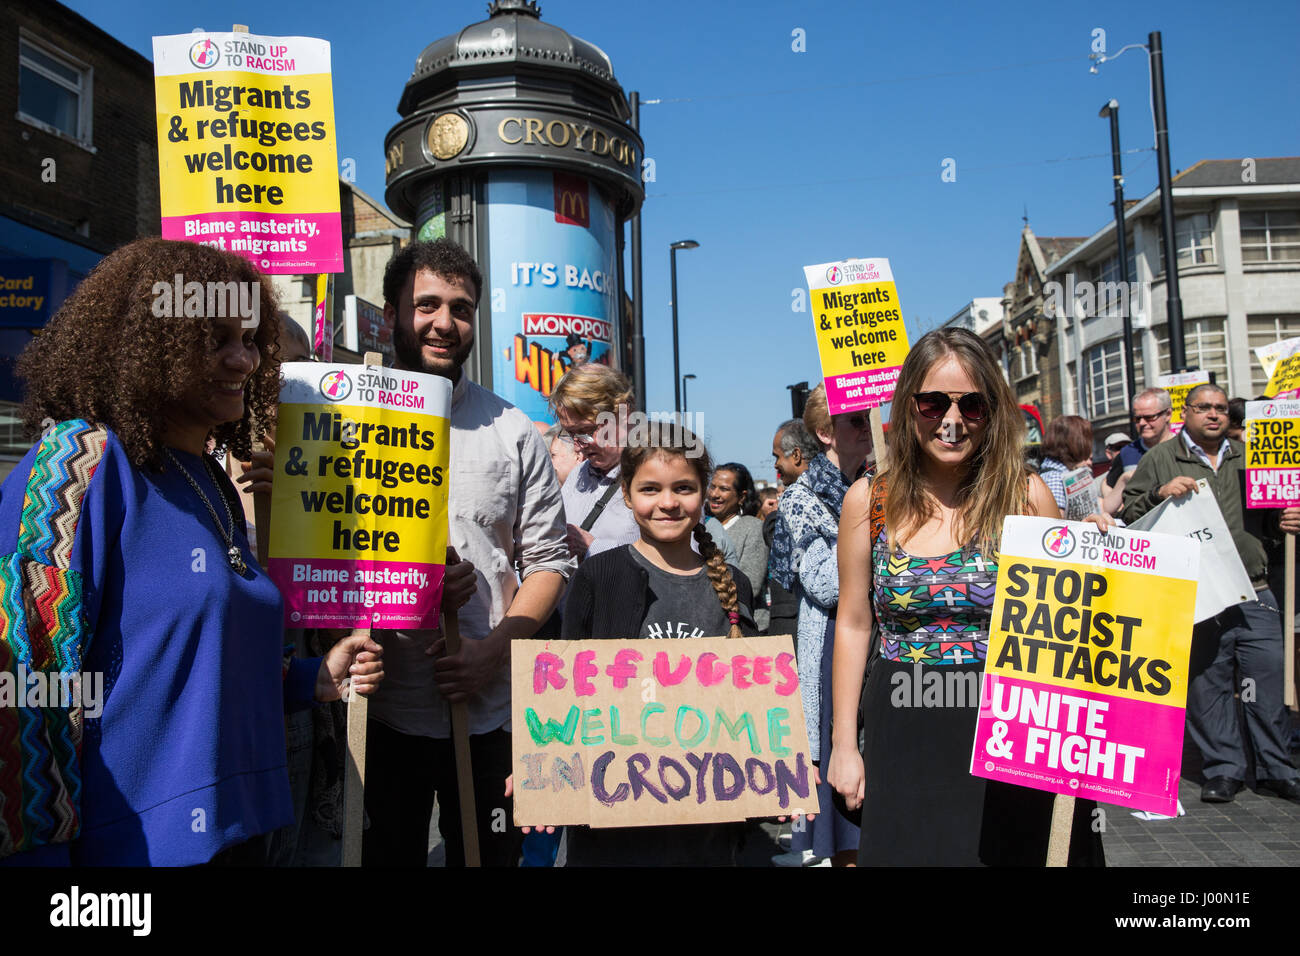 Croydon, UK. 8th Apr, 2017. Local people join a Unity protest organised by Stand Up To Racism following the recent - Stock Image